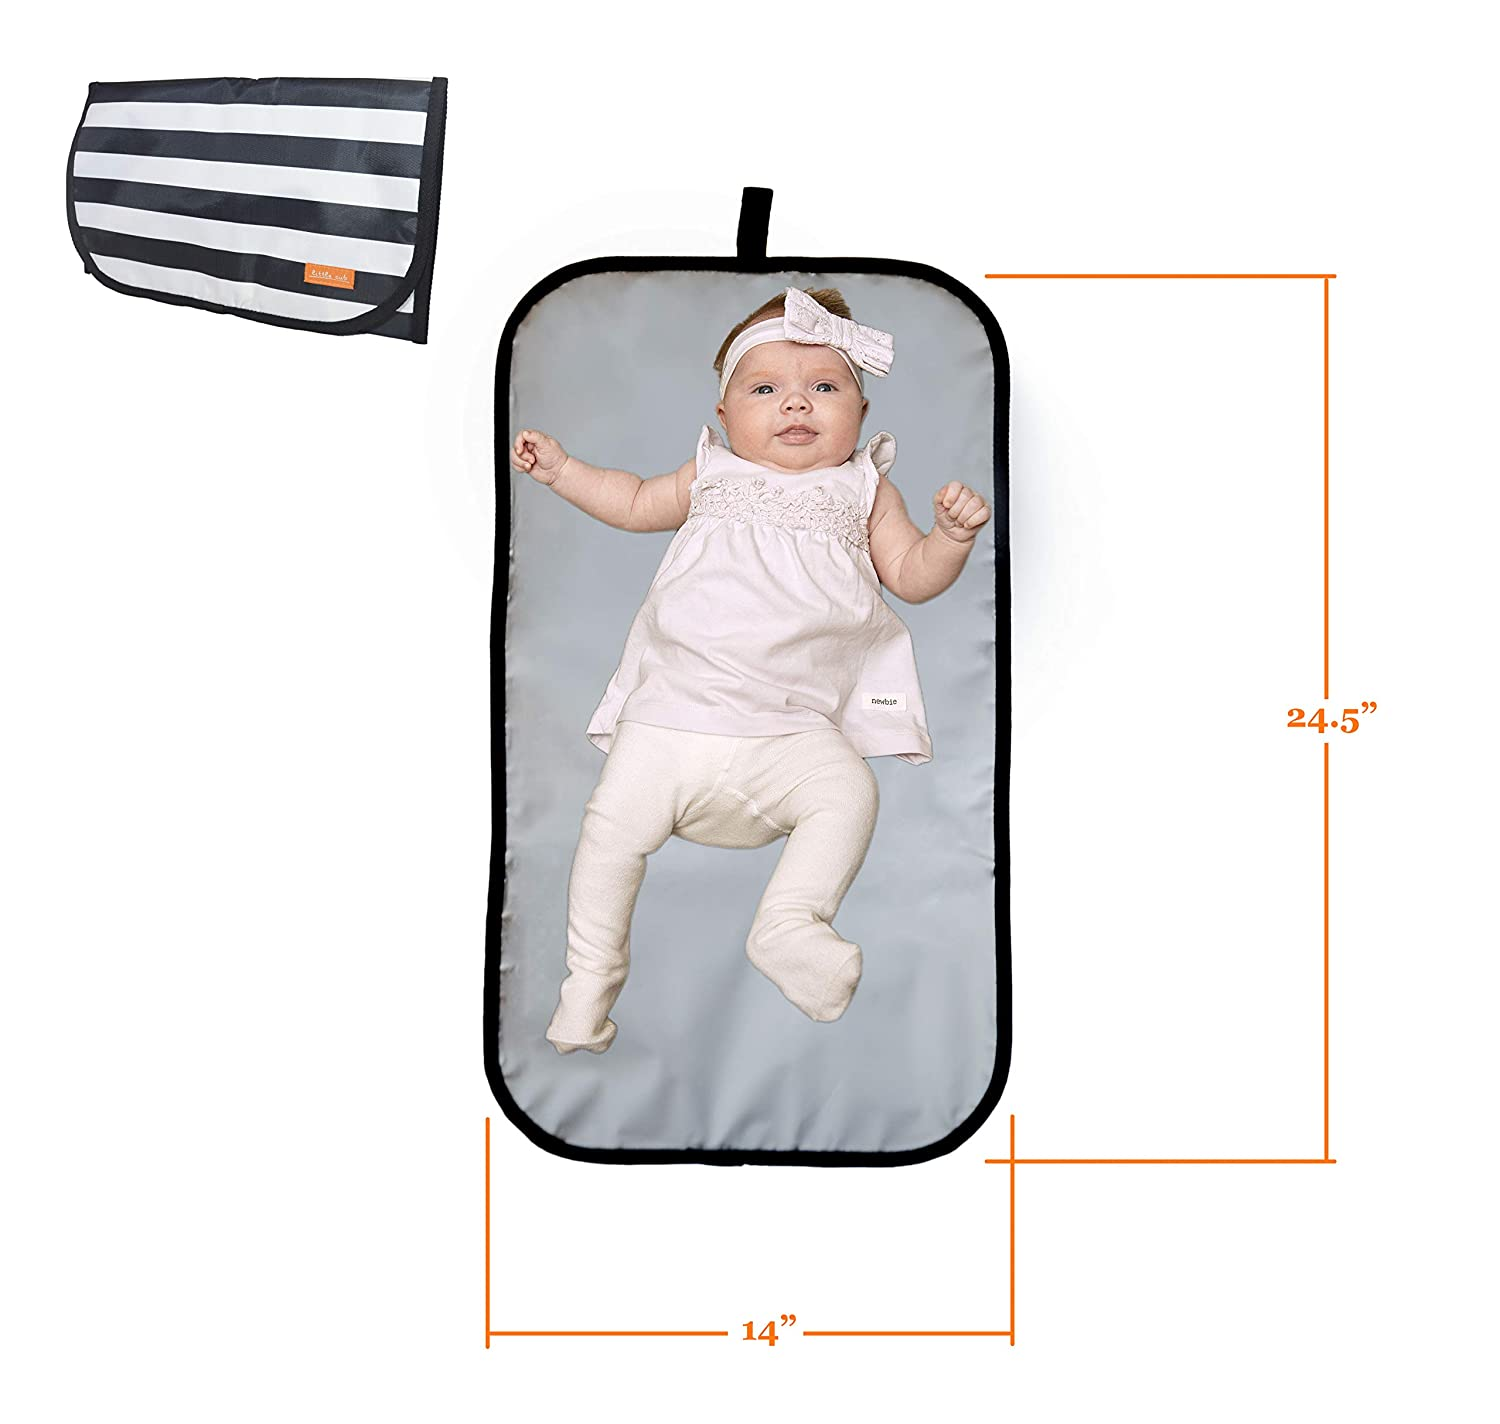 Lightweight Travel Size Foldable and Wipeable Diaper Changing Mat Includes Soft Head Pillow /& Storage Pockets -For Infants /& Baby Waterproof LITTLE CUB Portable Changing Pad /& Baby Changing Pad